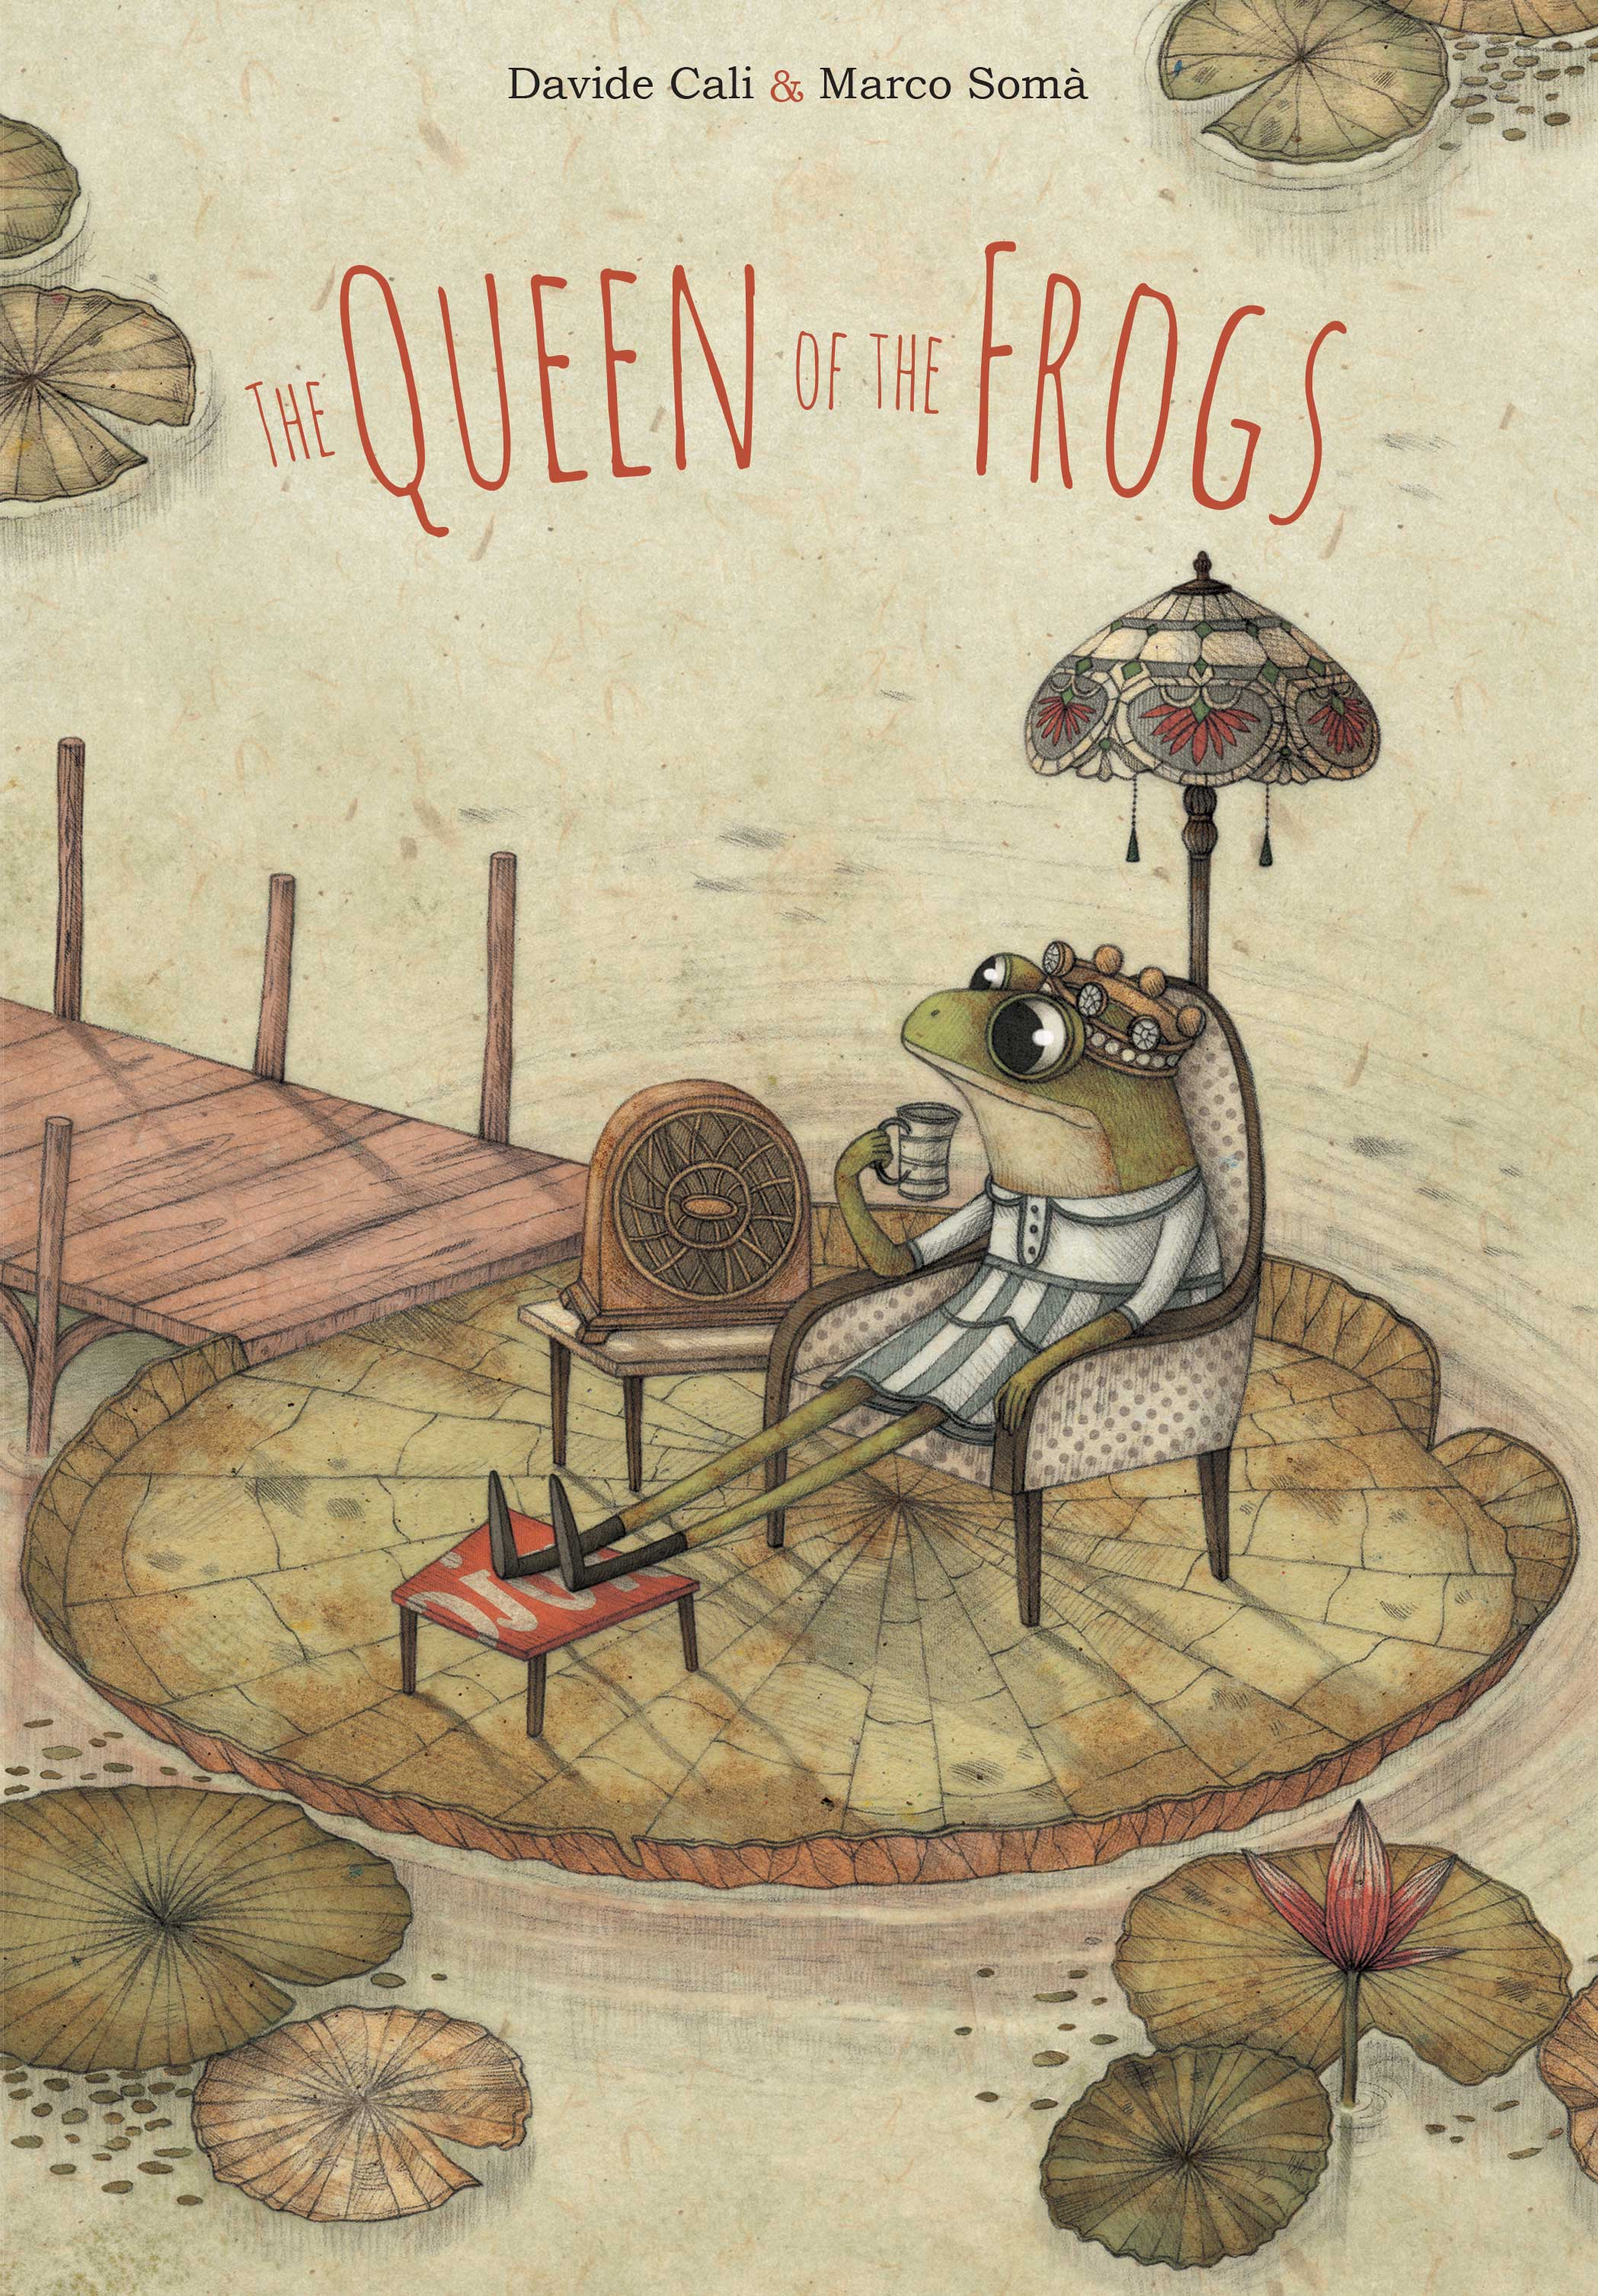 The Queen of the Frogs